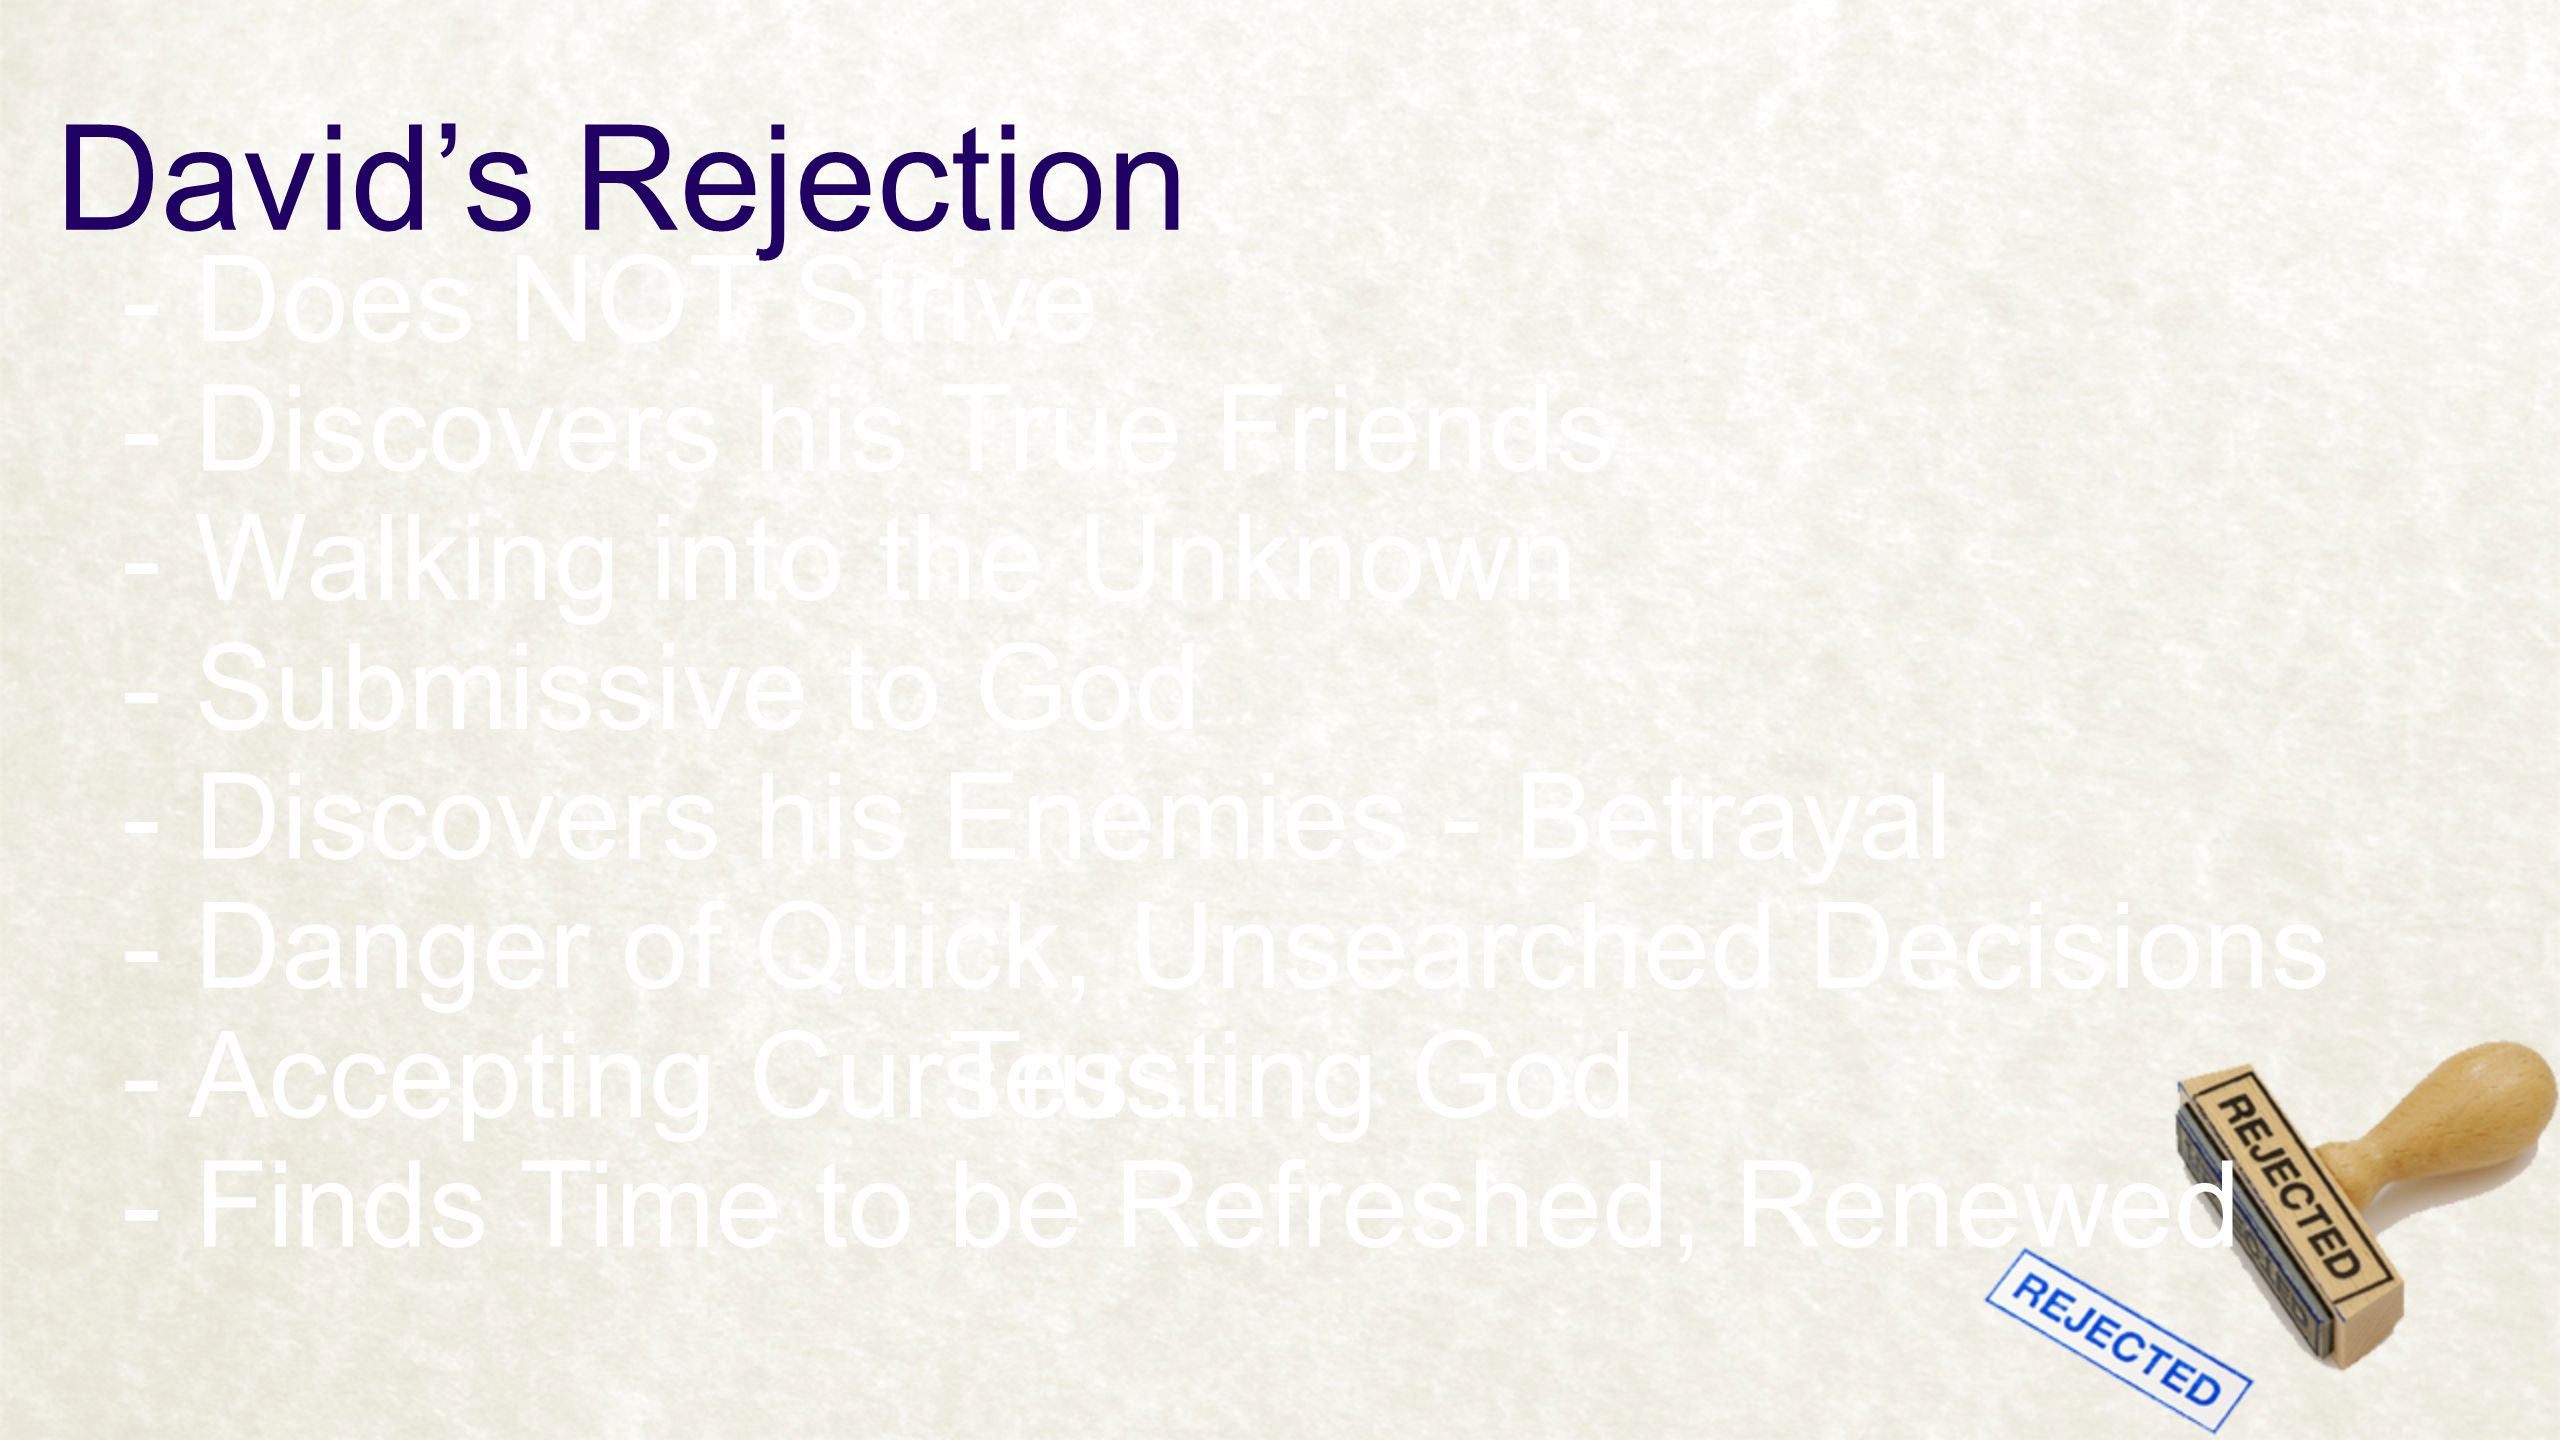 David's Rejection - Does NOT Strive - Discovers his True Friends - Walking into the Unknown - Discovers his Enemies - Betrayal - Submissive to God - D